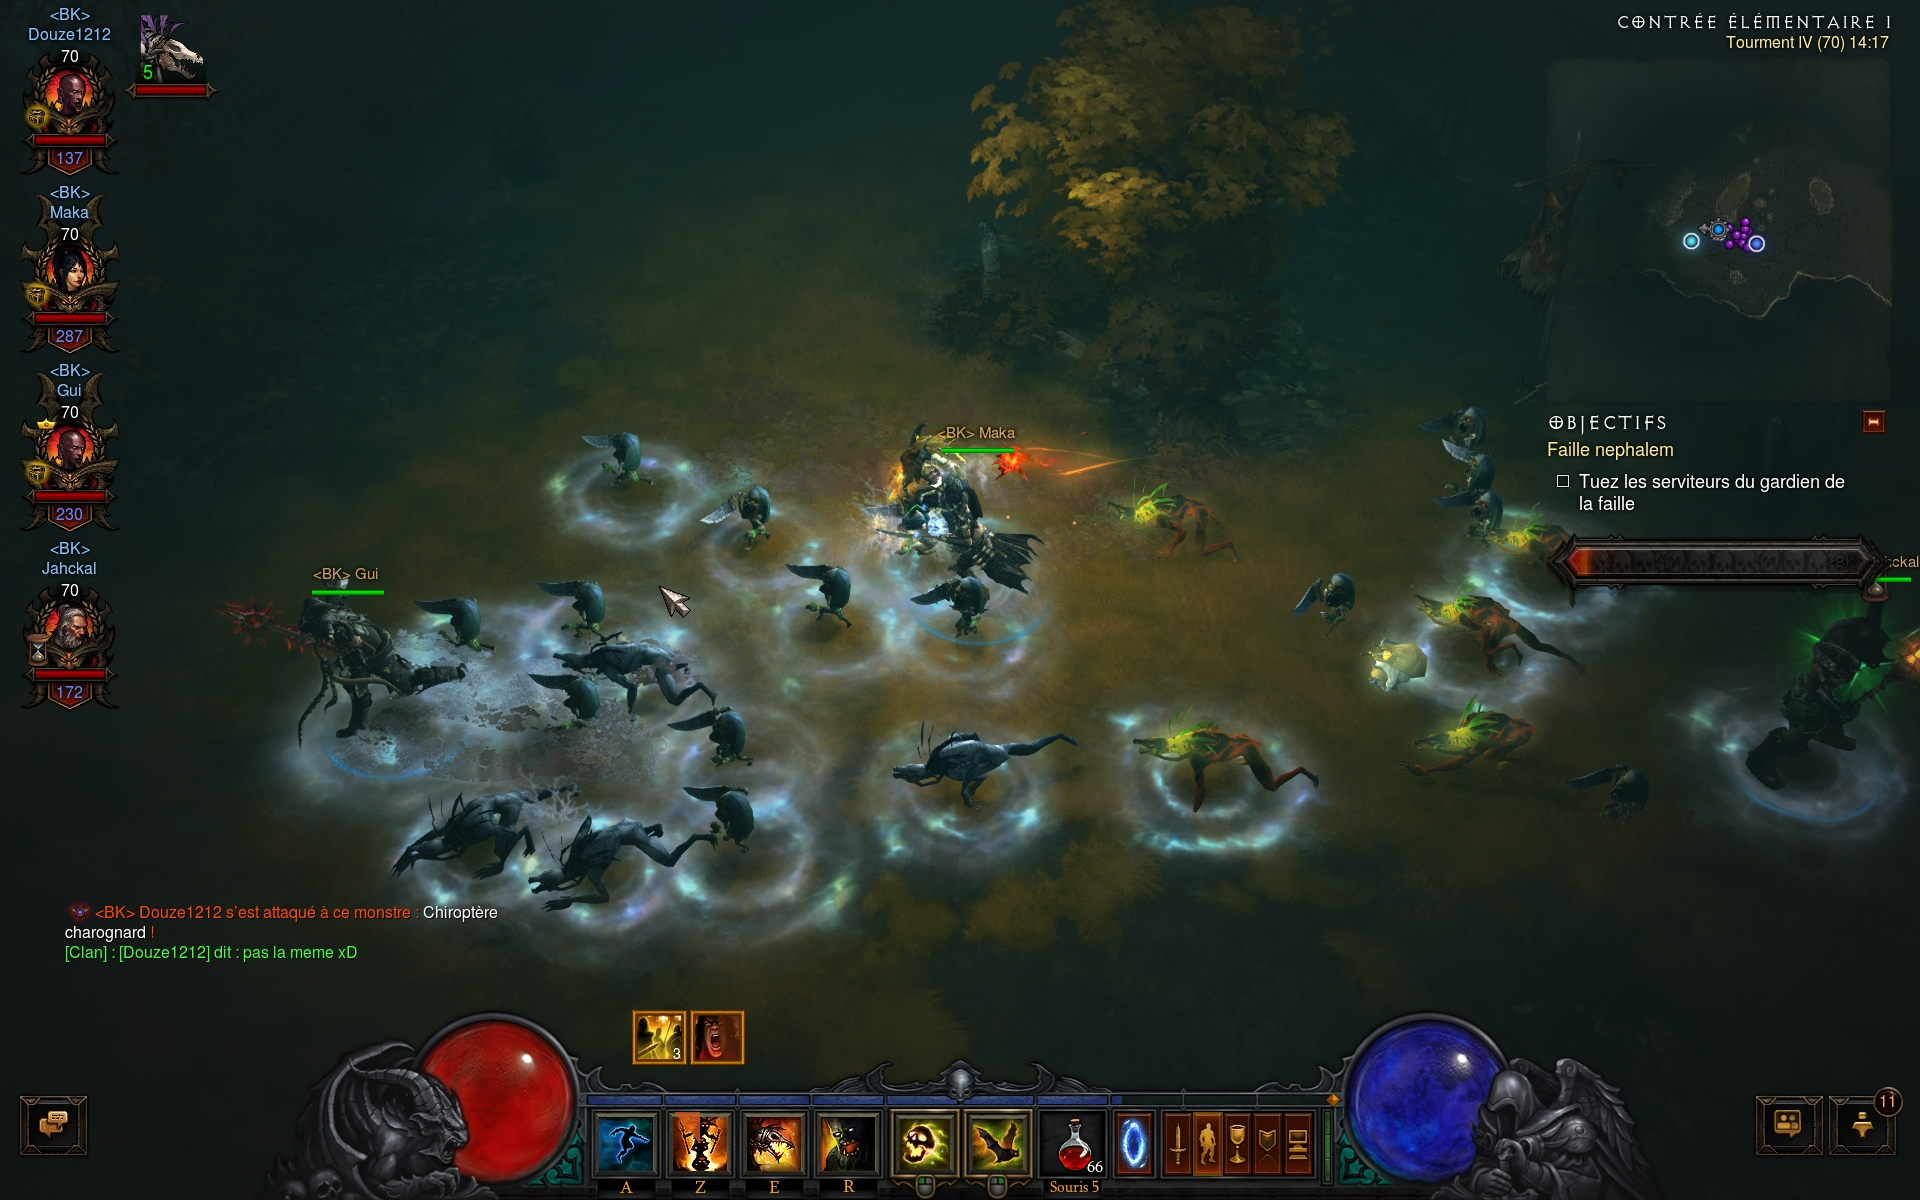 World of pets - 1920 x 1200 - World of pets